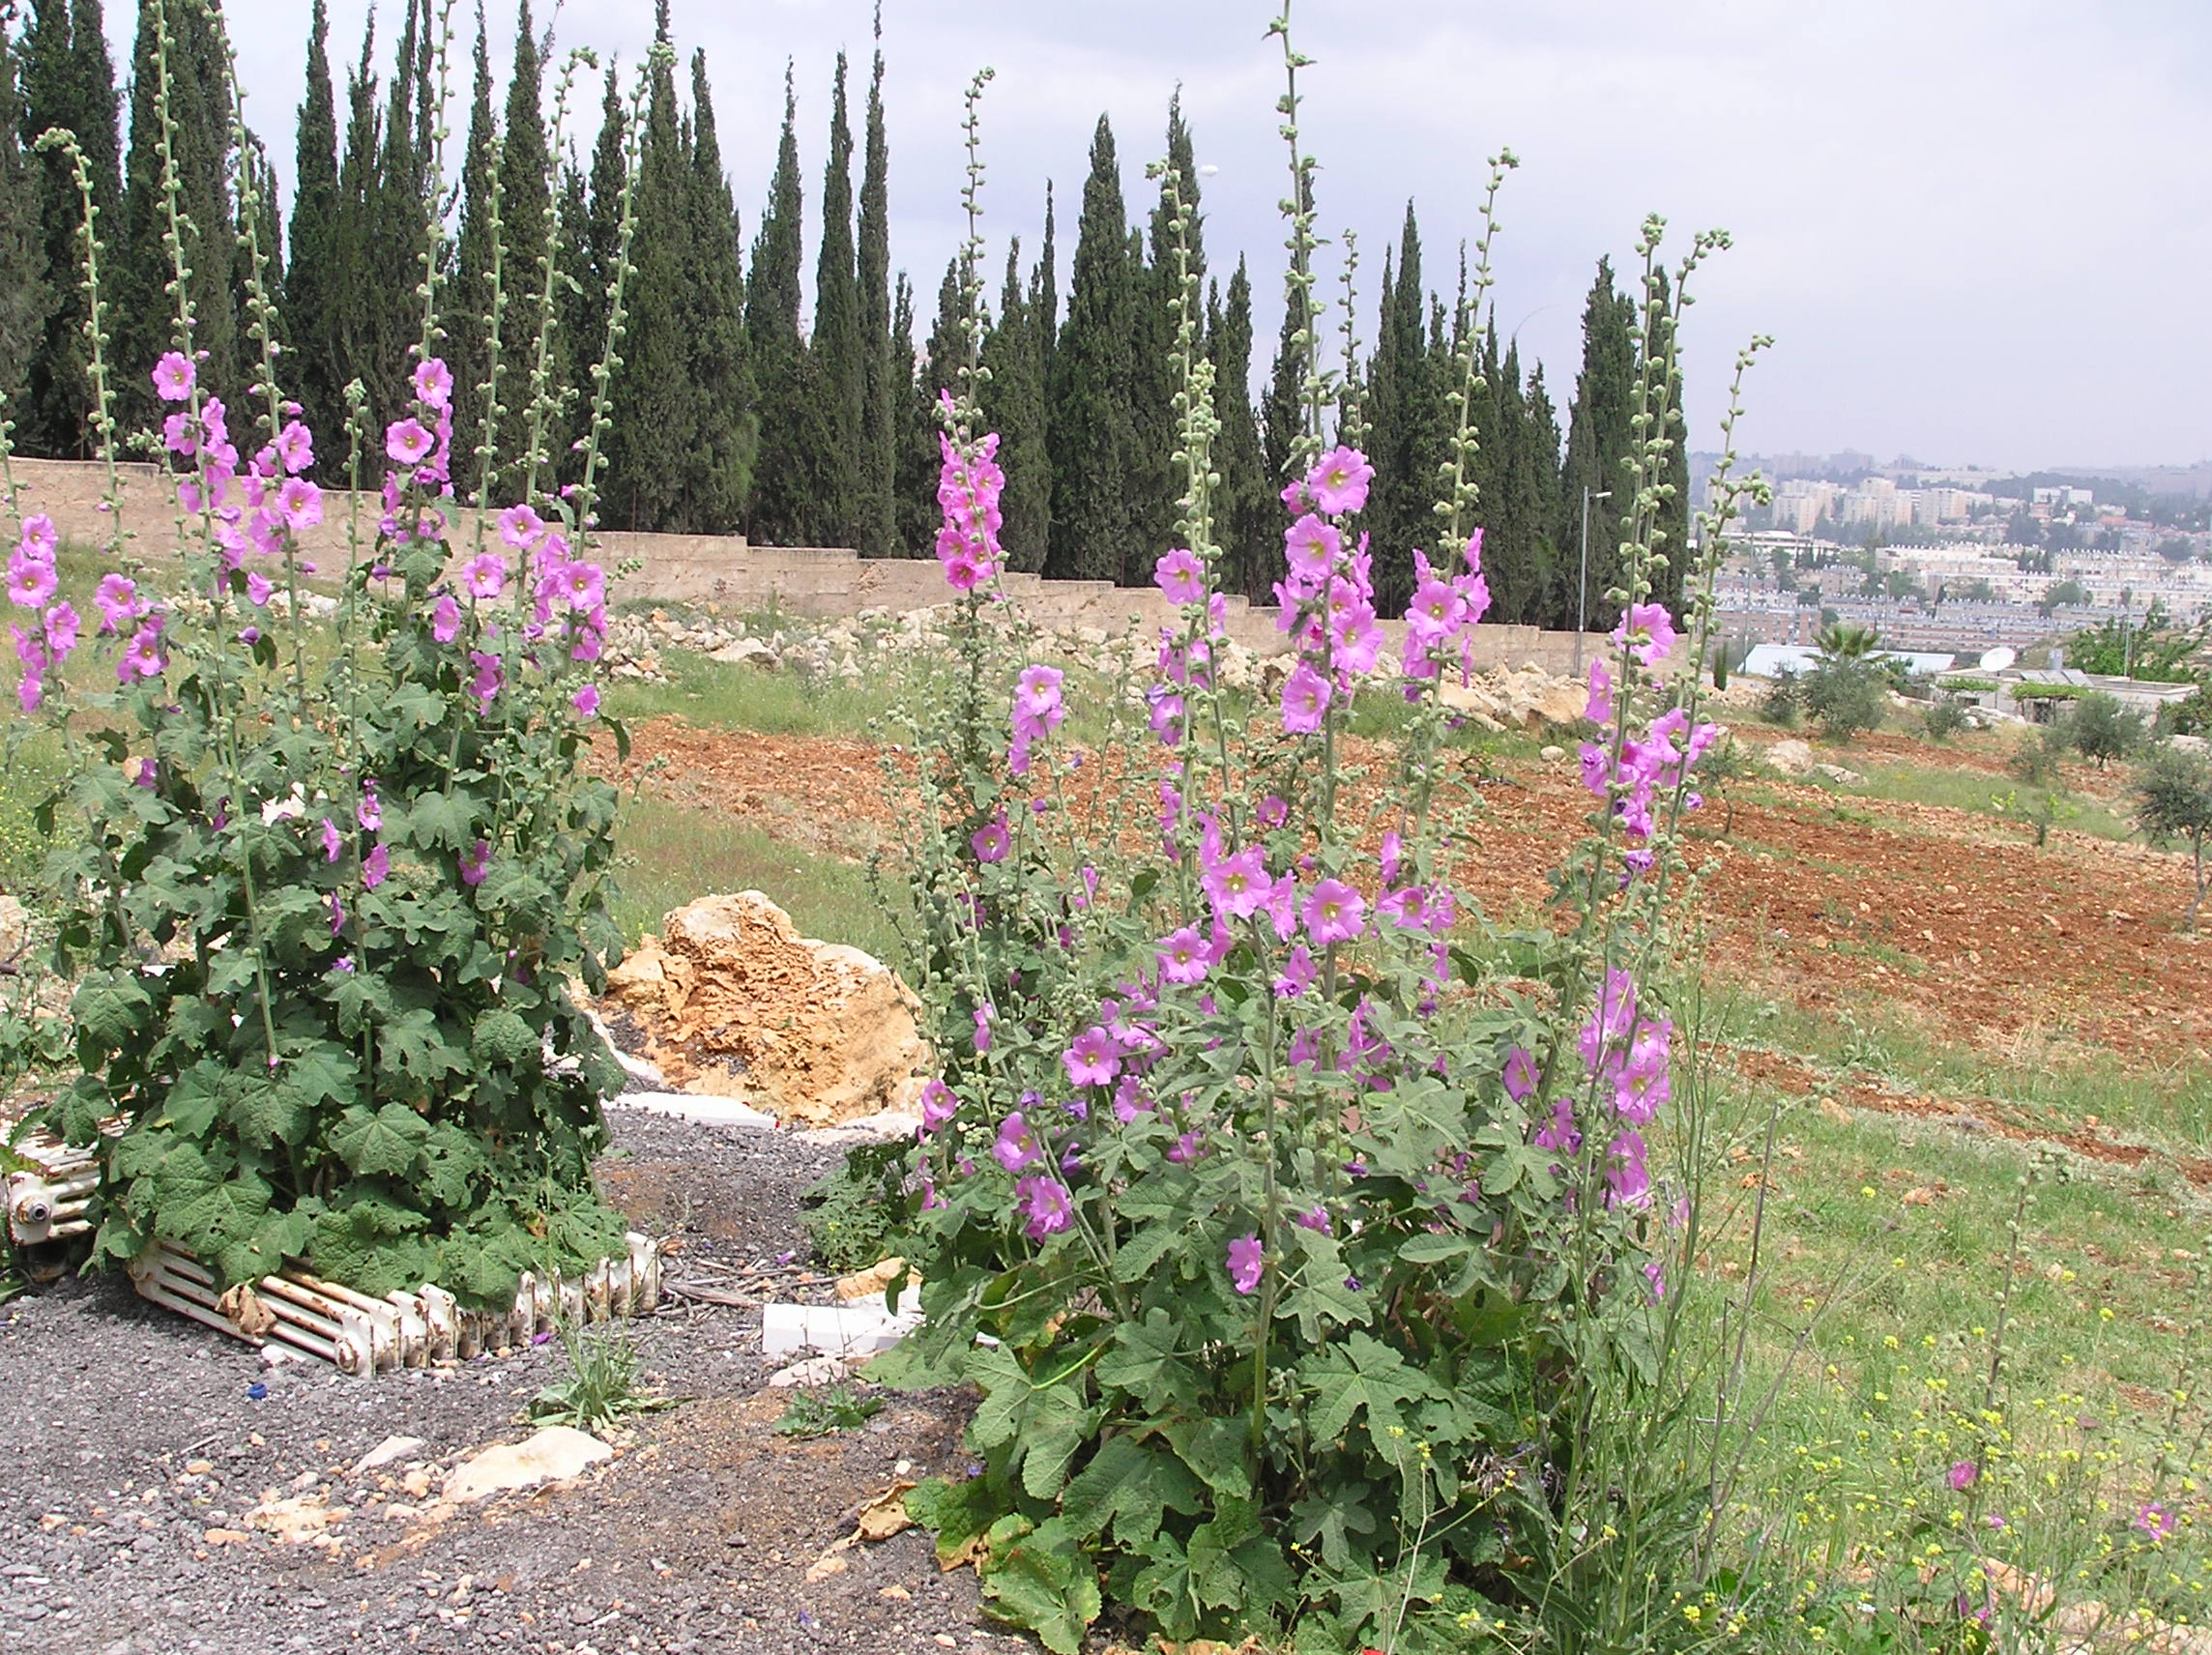 Sharafat - شرفات : Wild Hollyhock In Full Bloom With Al-Alami's Cedars In The Background/Sharaft